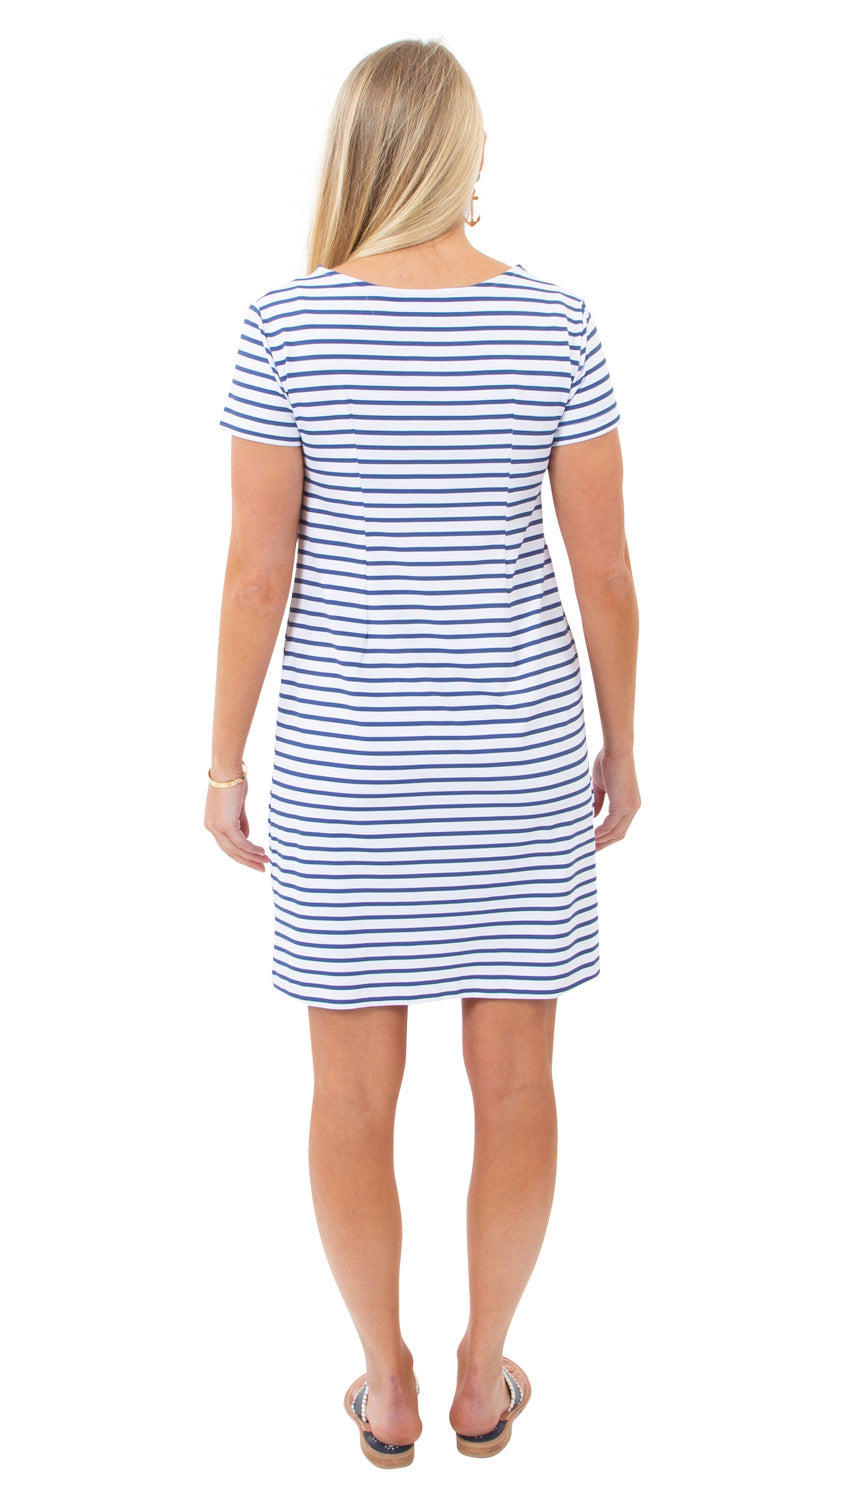 Marina Dress - Summer Stripe